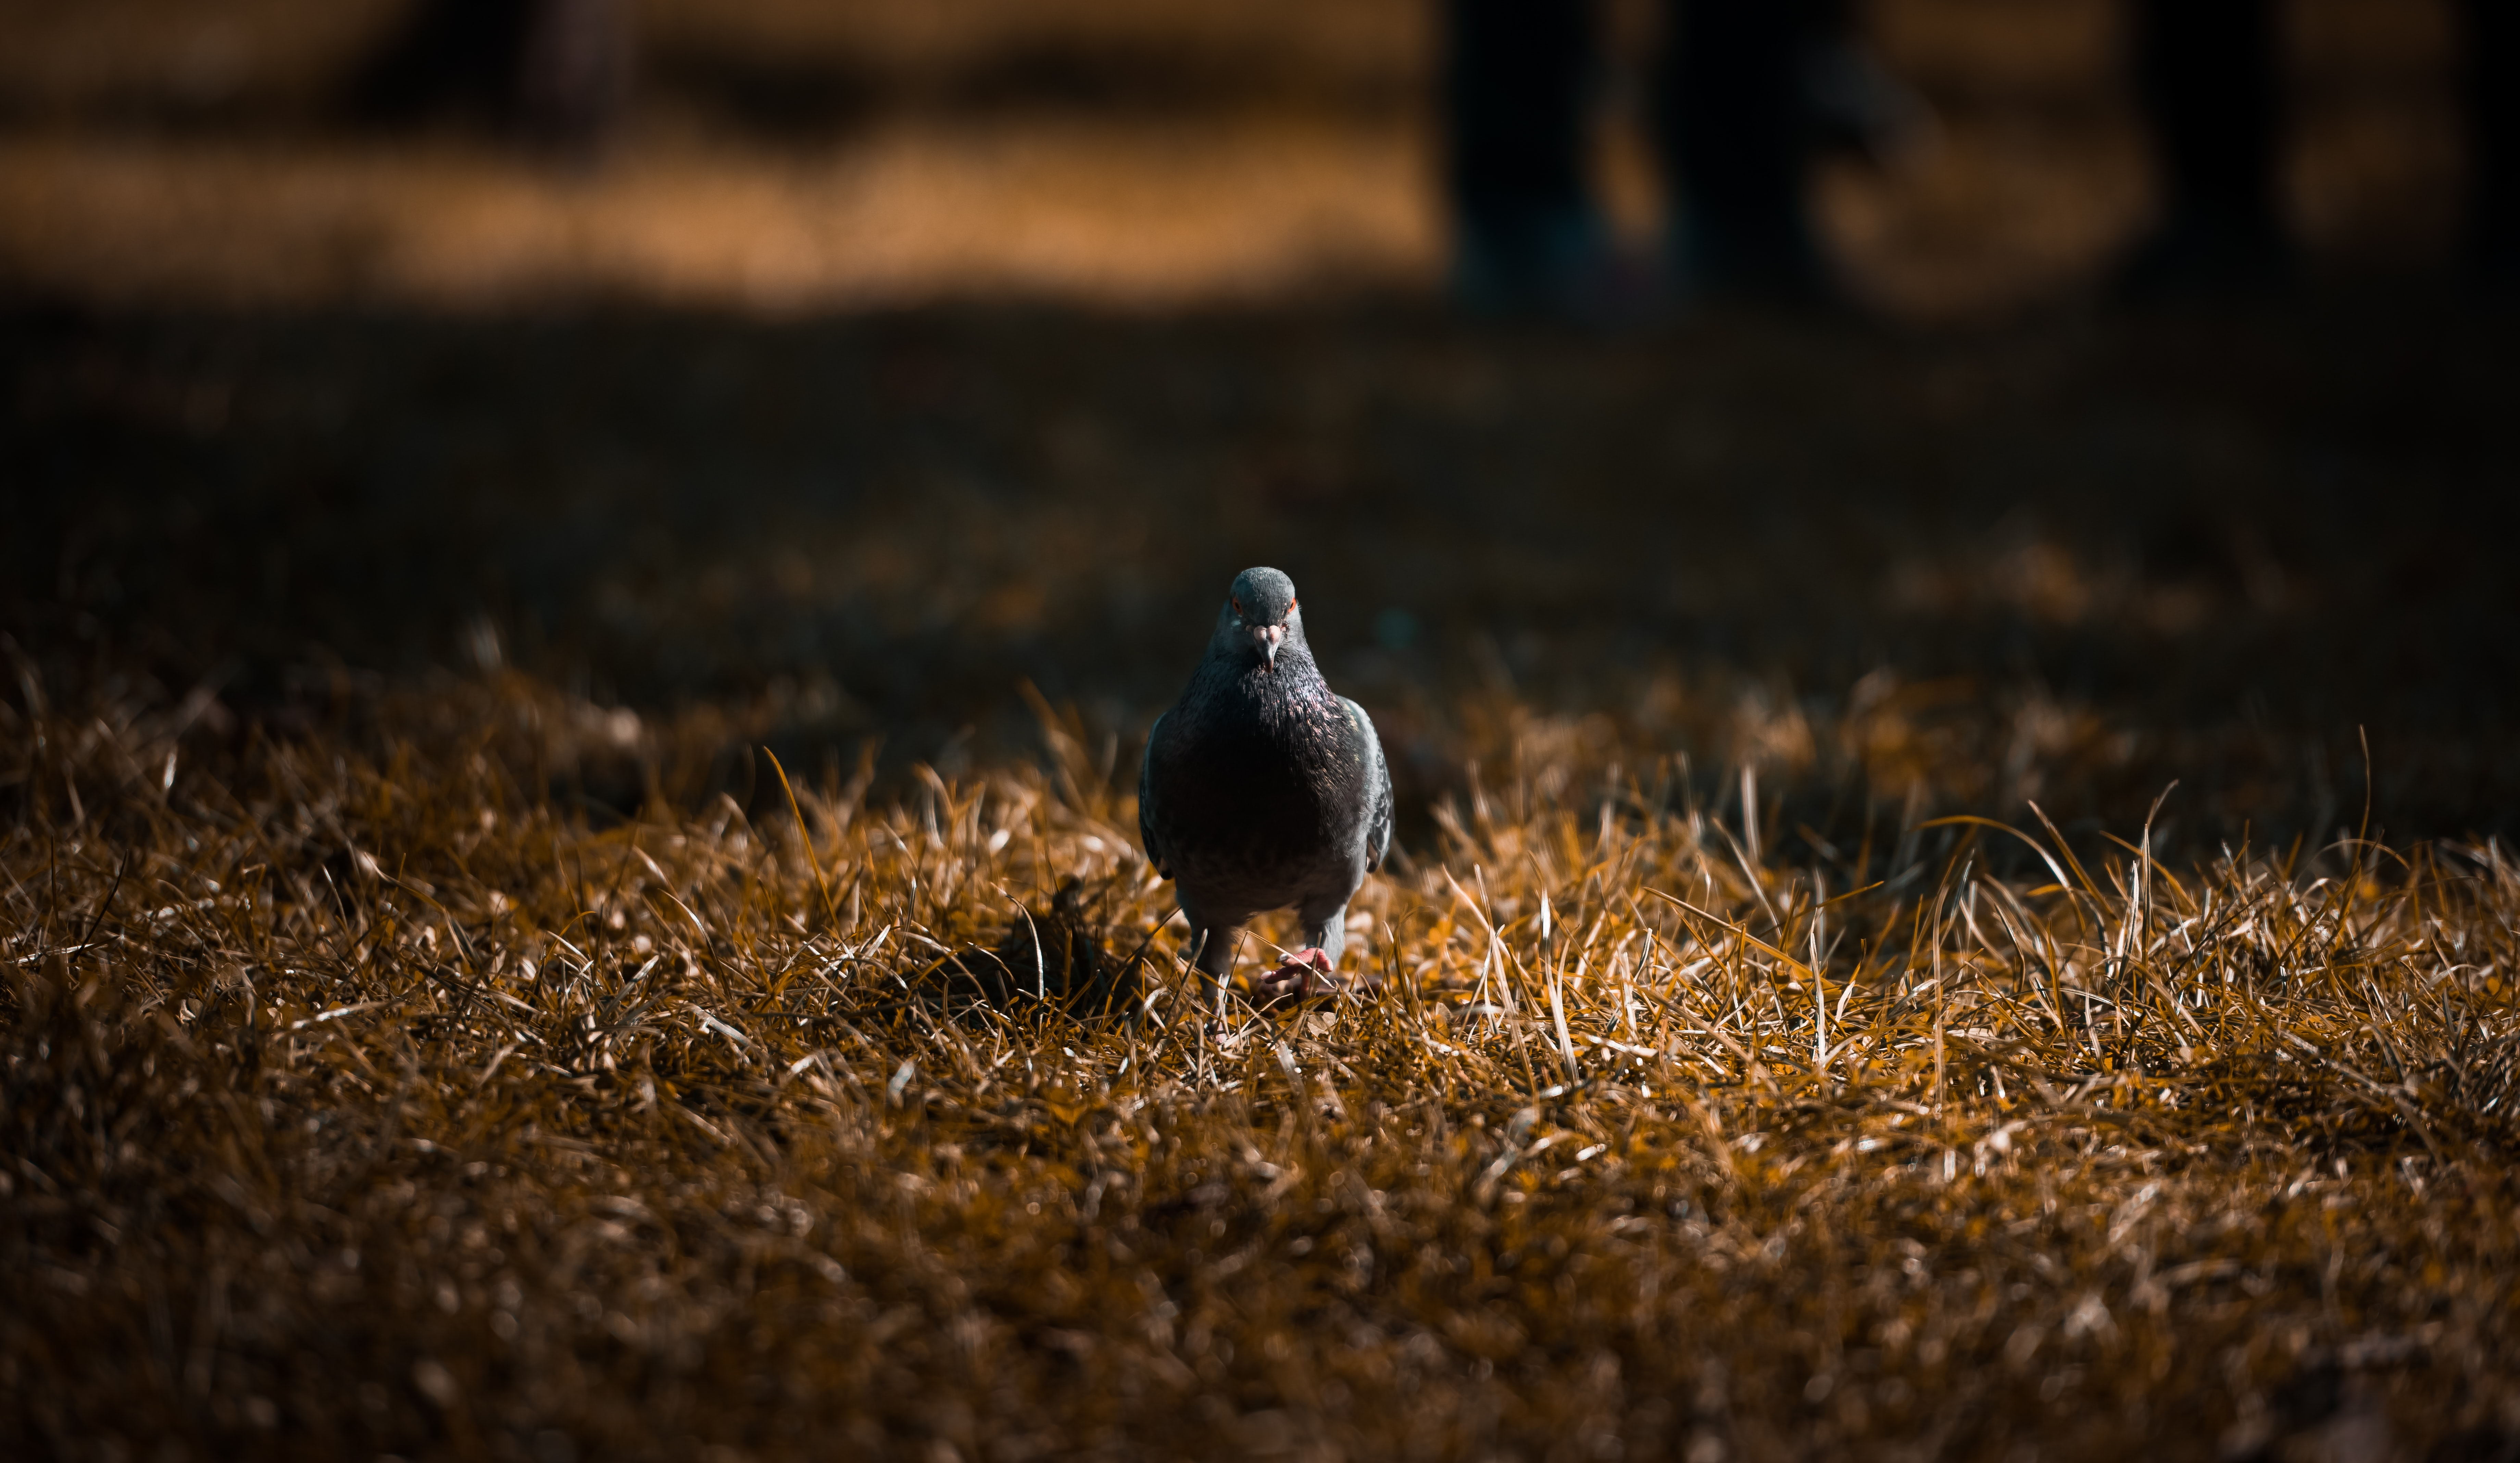 pigeon on dried grass